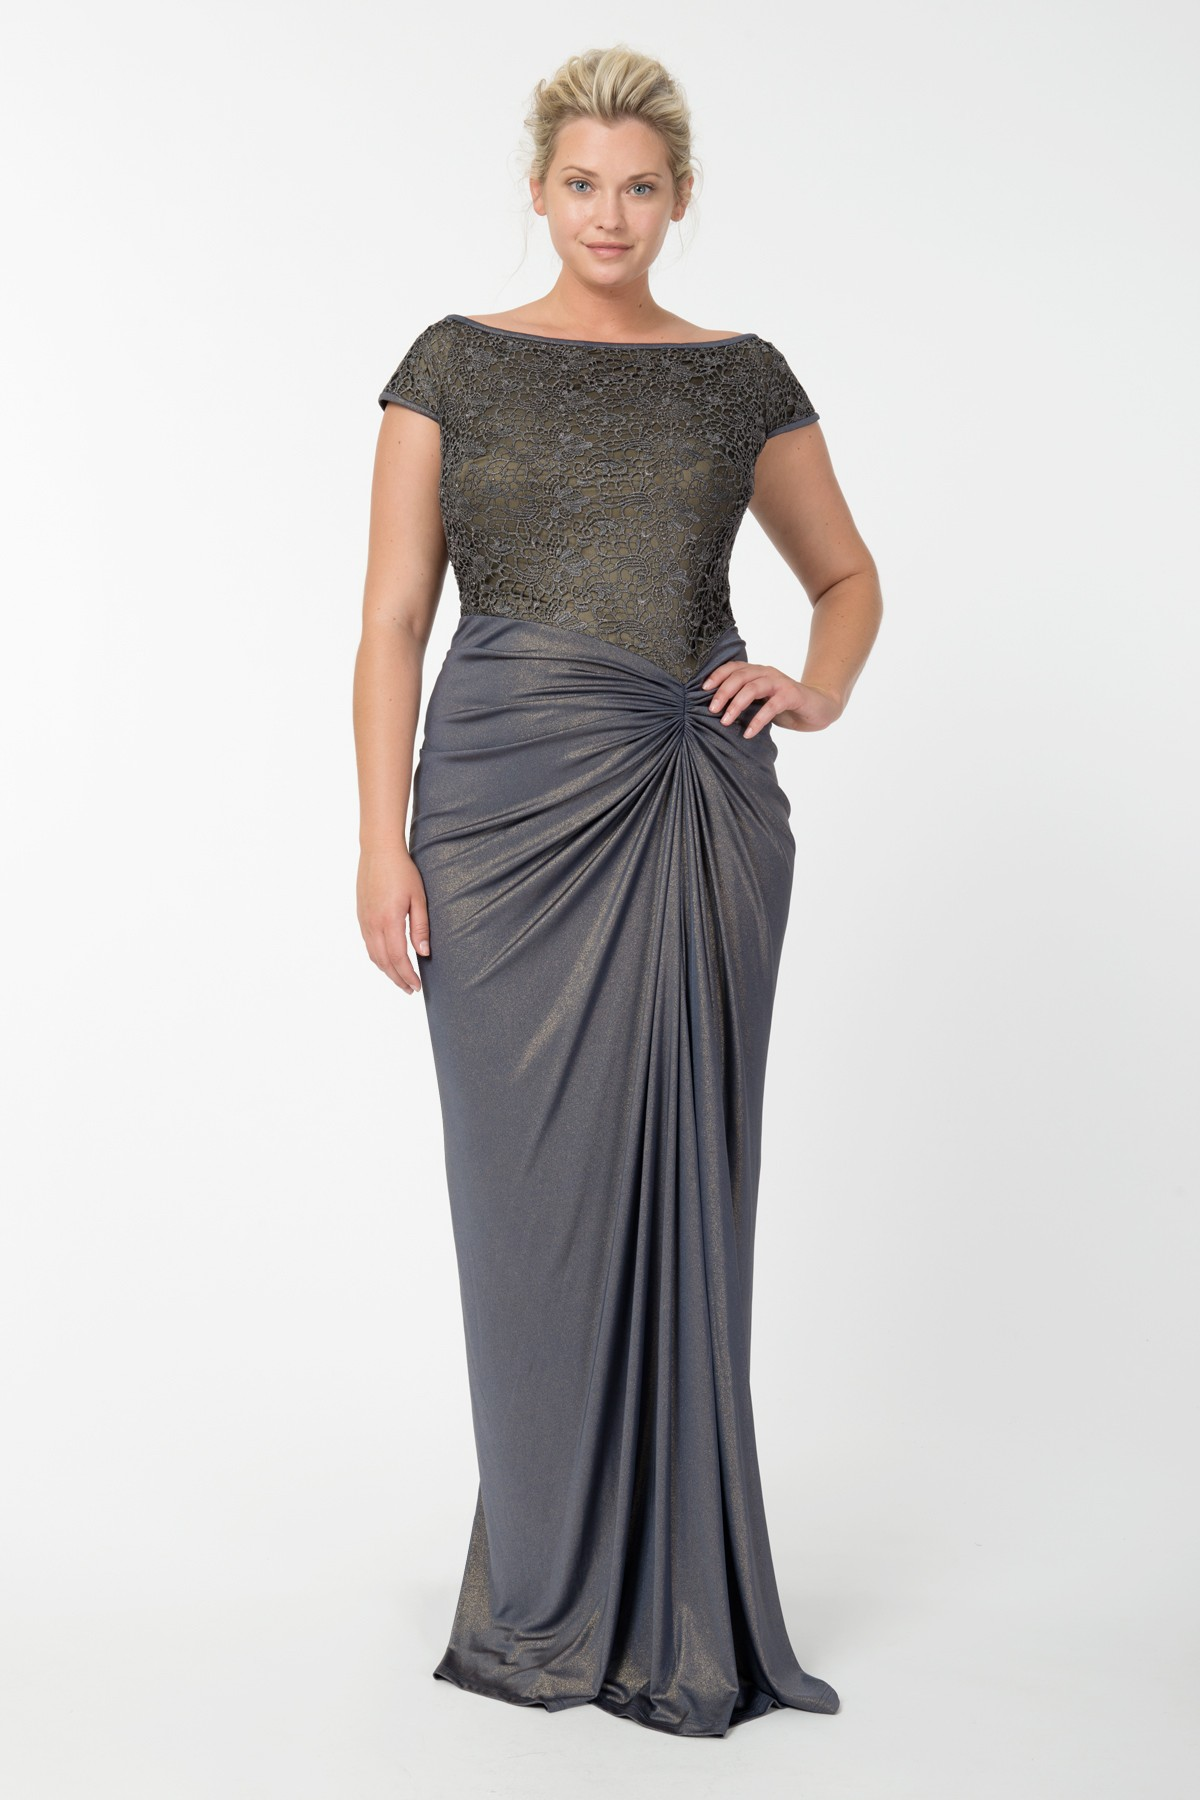 Large Size Evening Dresses